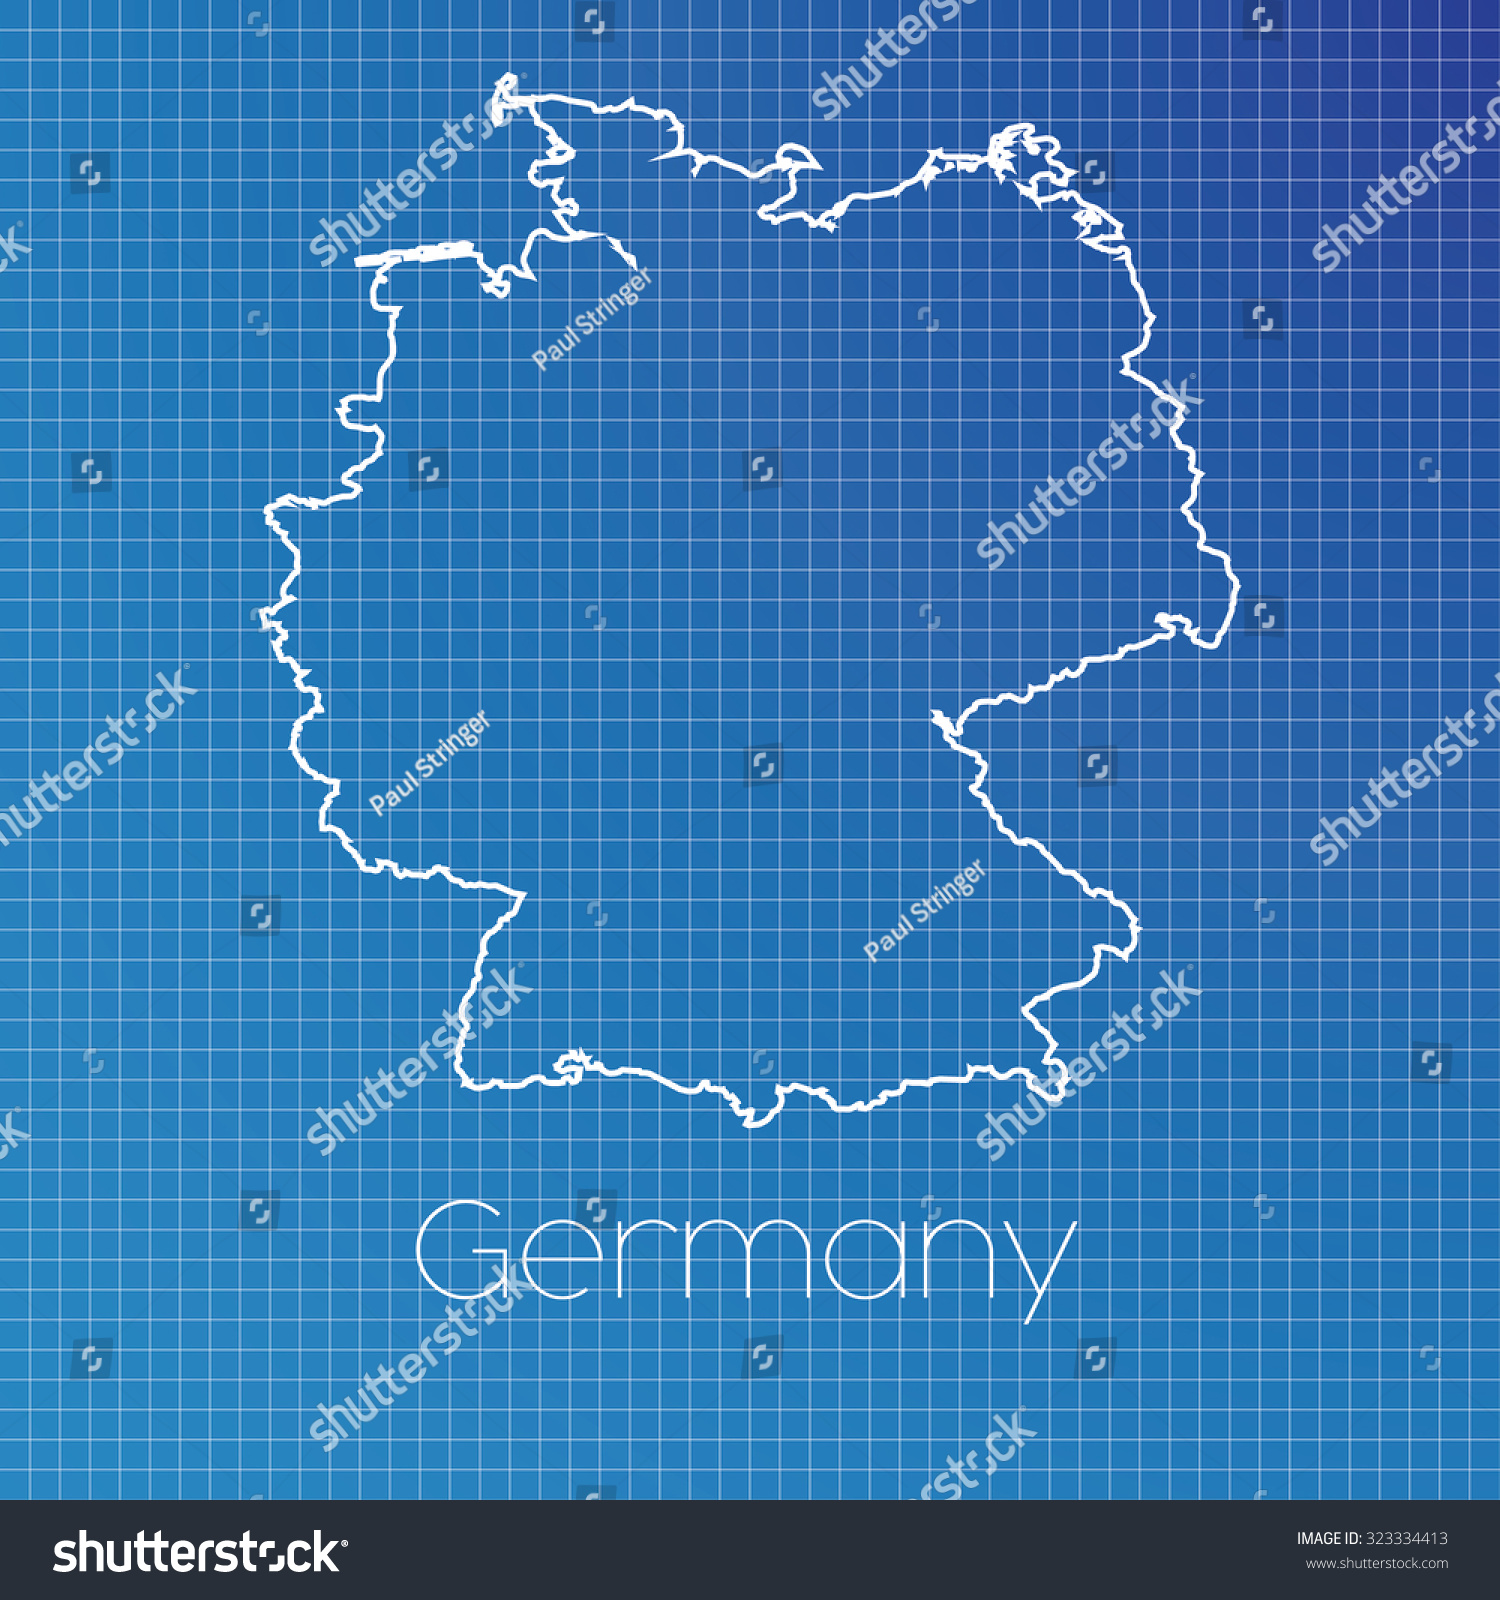 Schematic Outline Country Germany Stock Illustration 323334413 ...